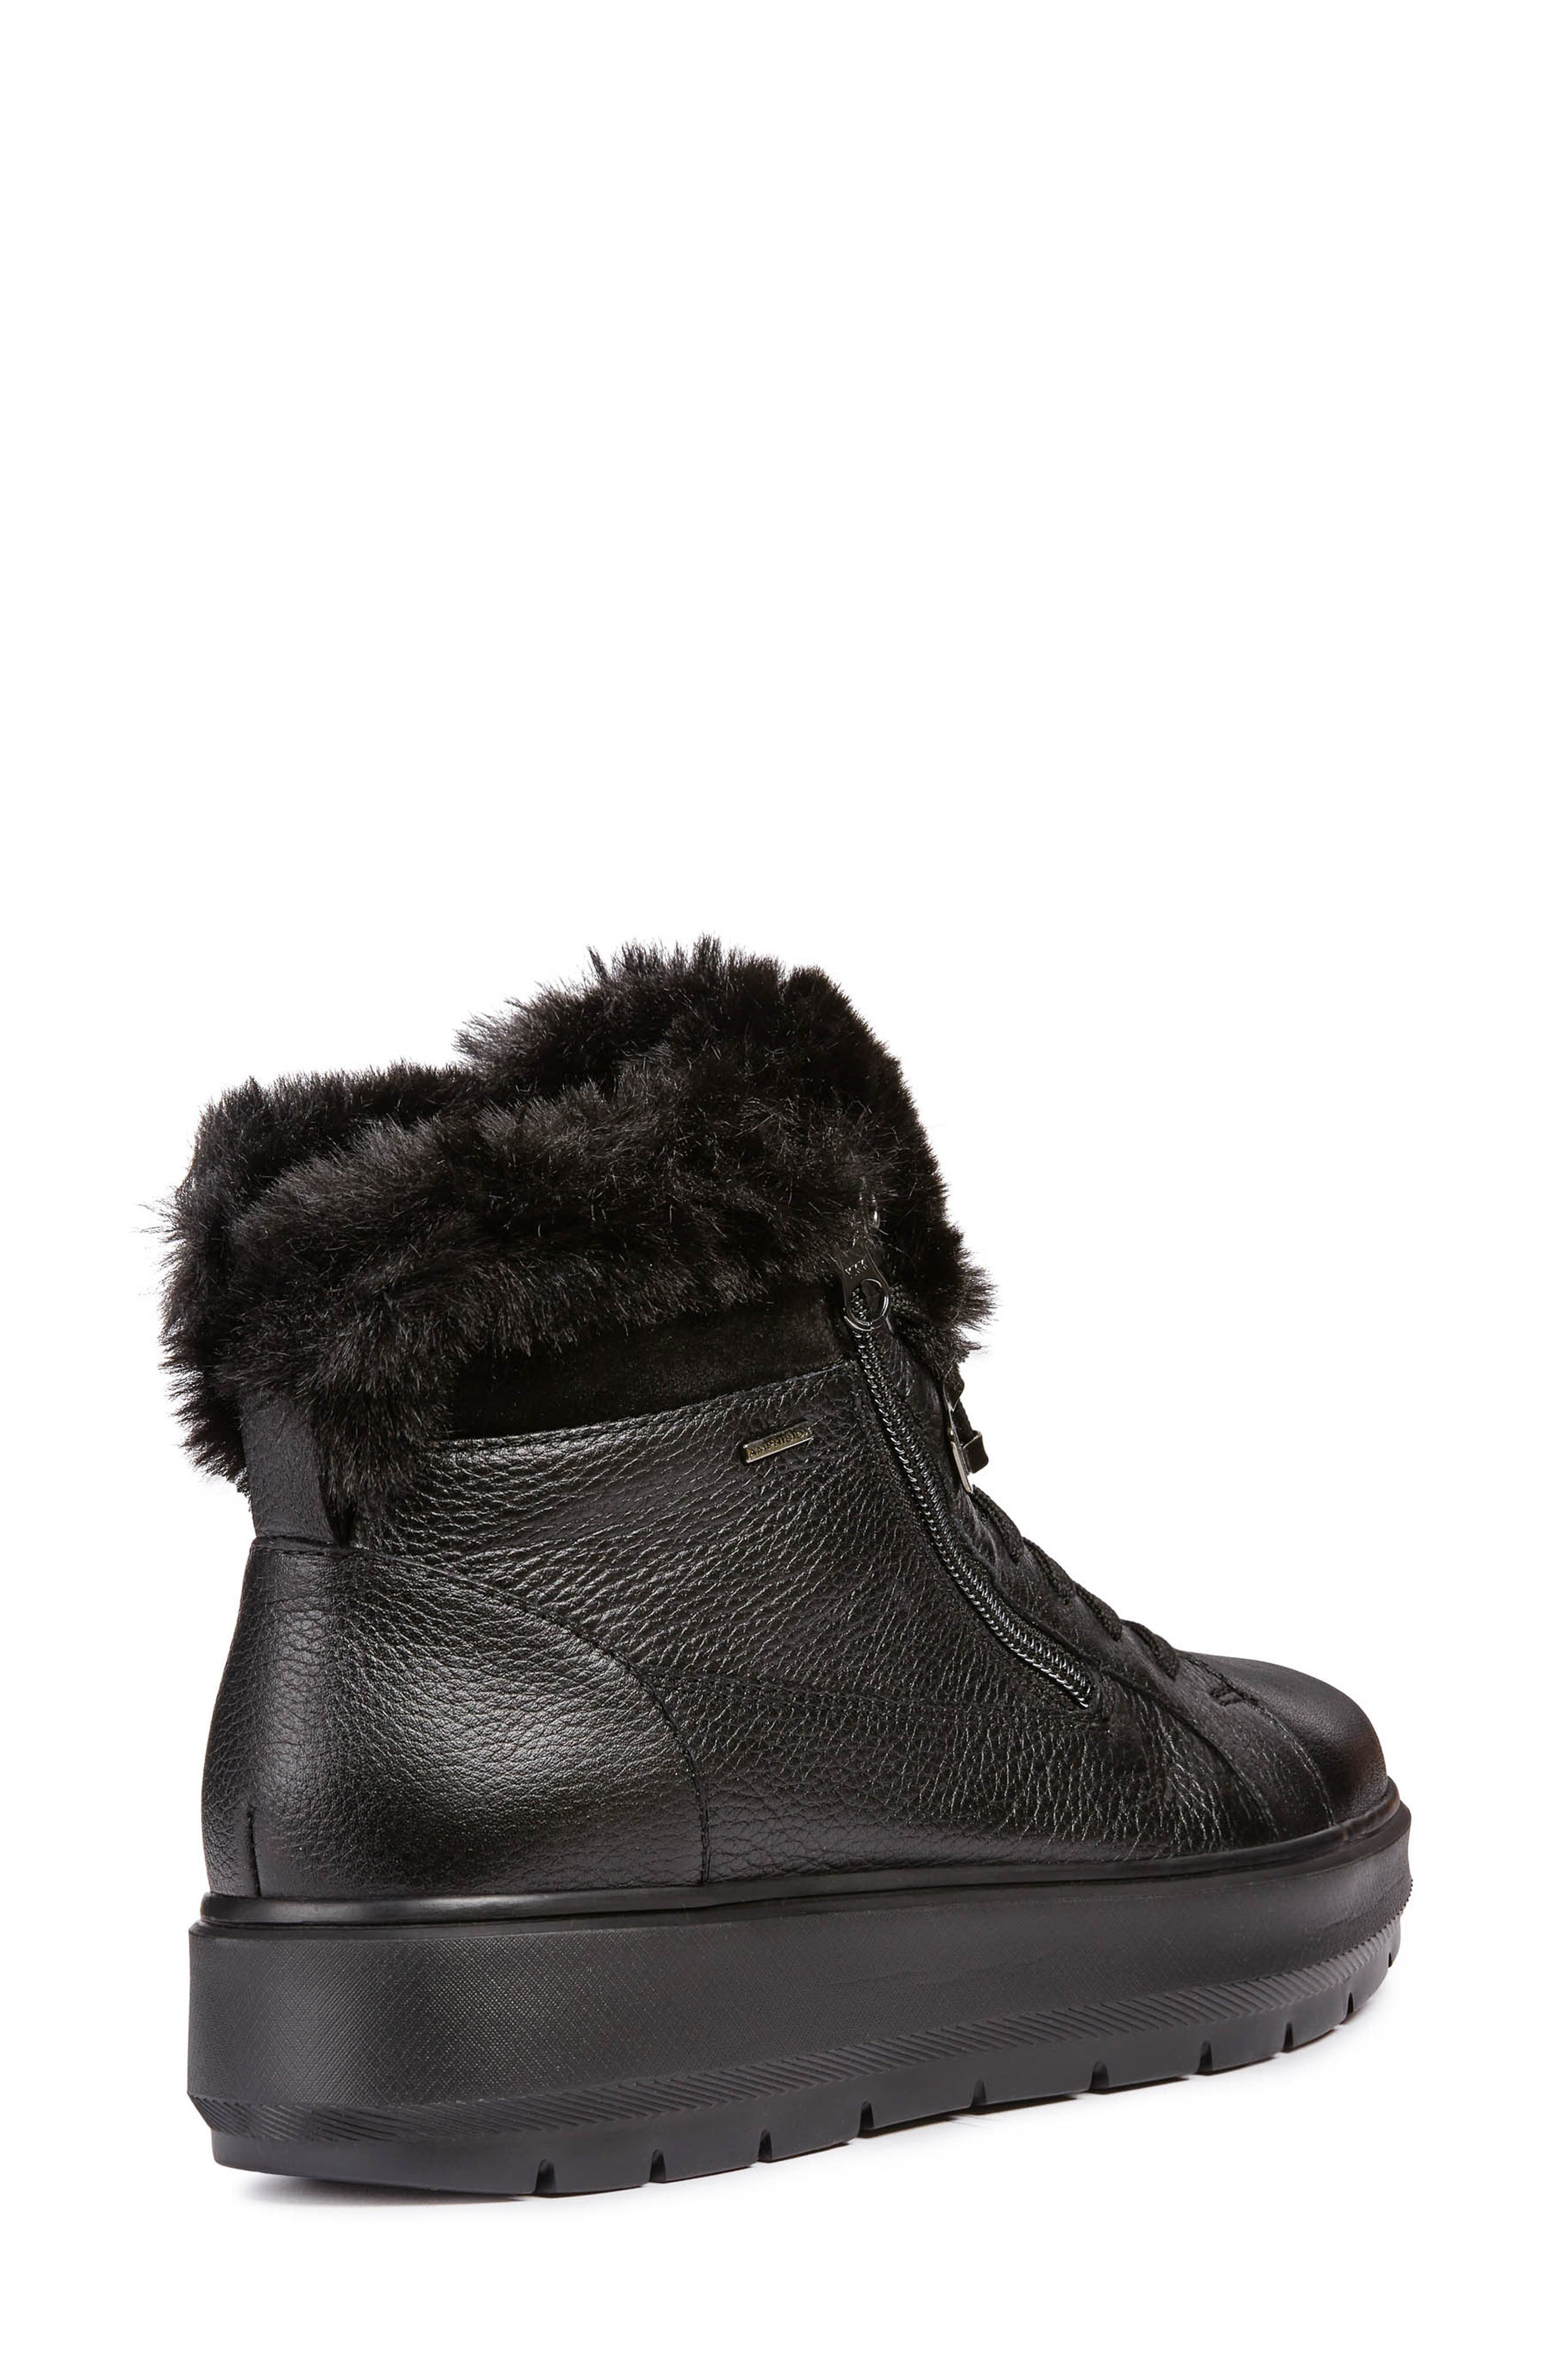 Kaula ABX Waterproof Faux-Fur Cuff Sneaker,                             Alternate thumbnail 2, color,                             BLACK LEATHER